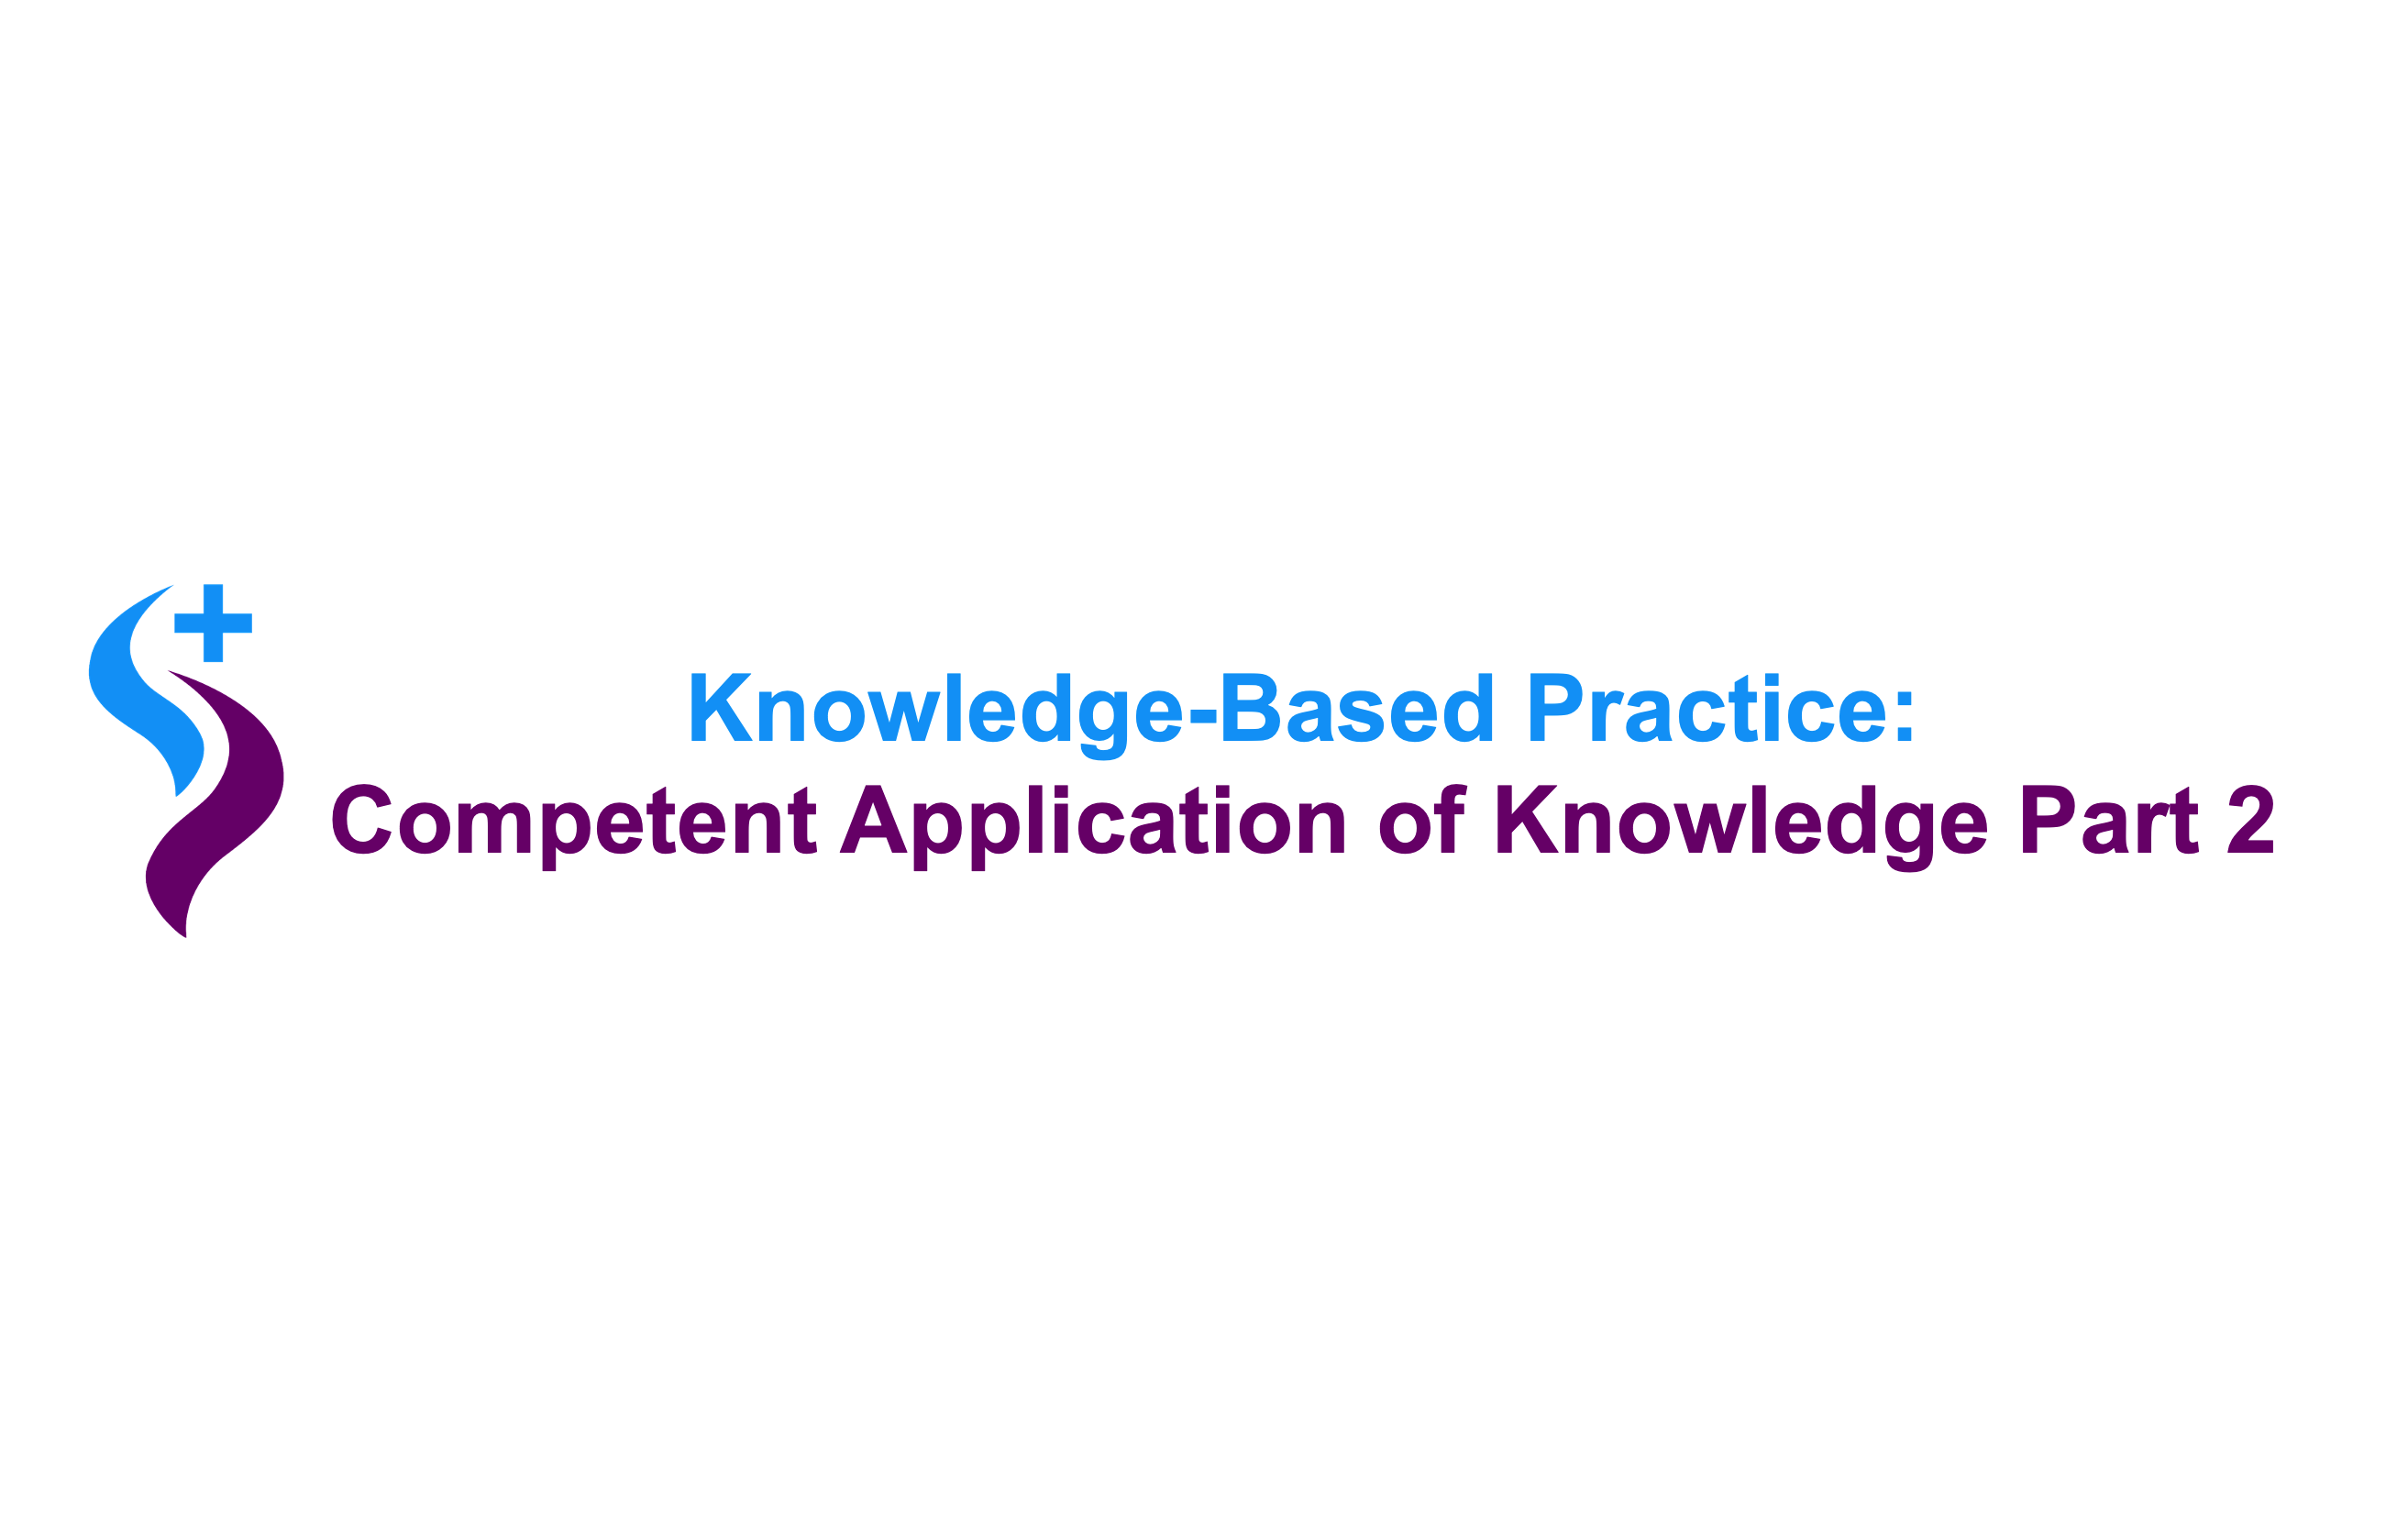 Knowledge-Based Practice: Competent Application of Knowledge (Part 2) – C1